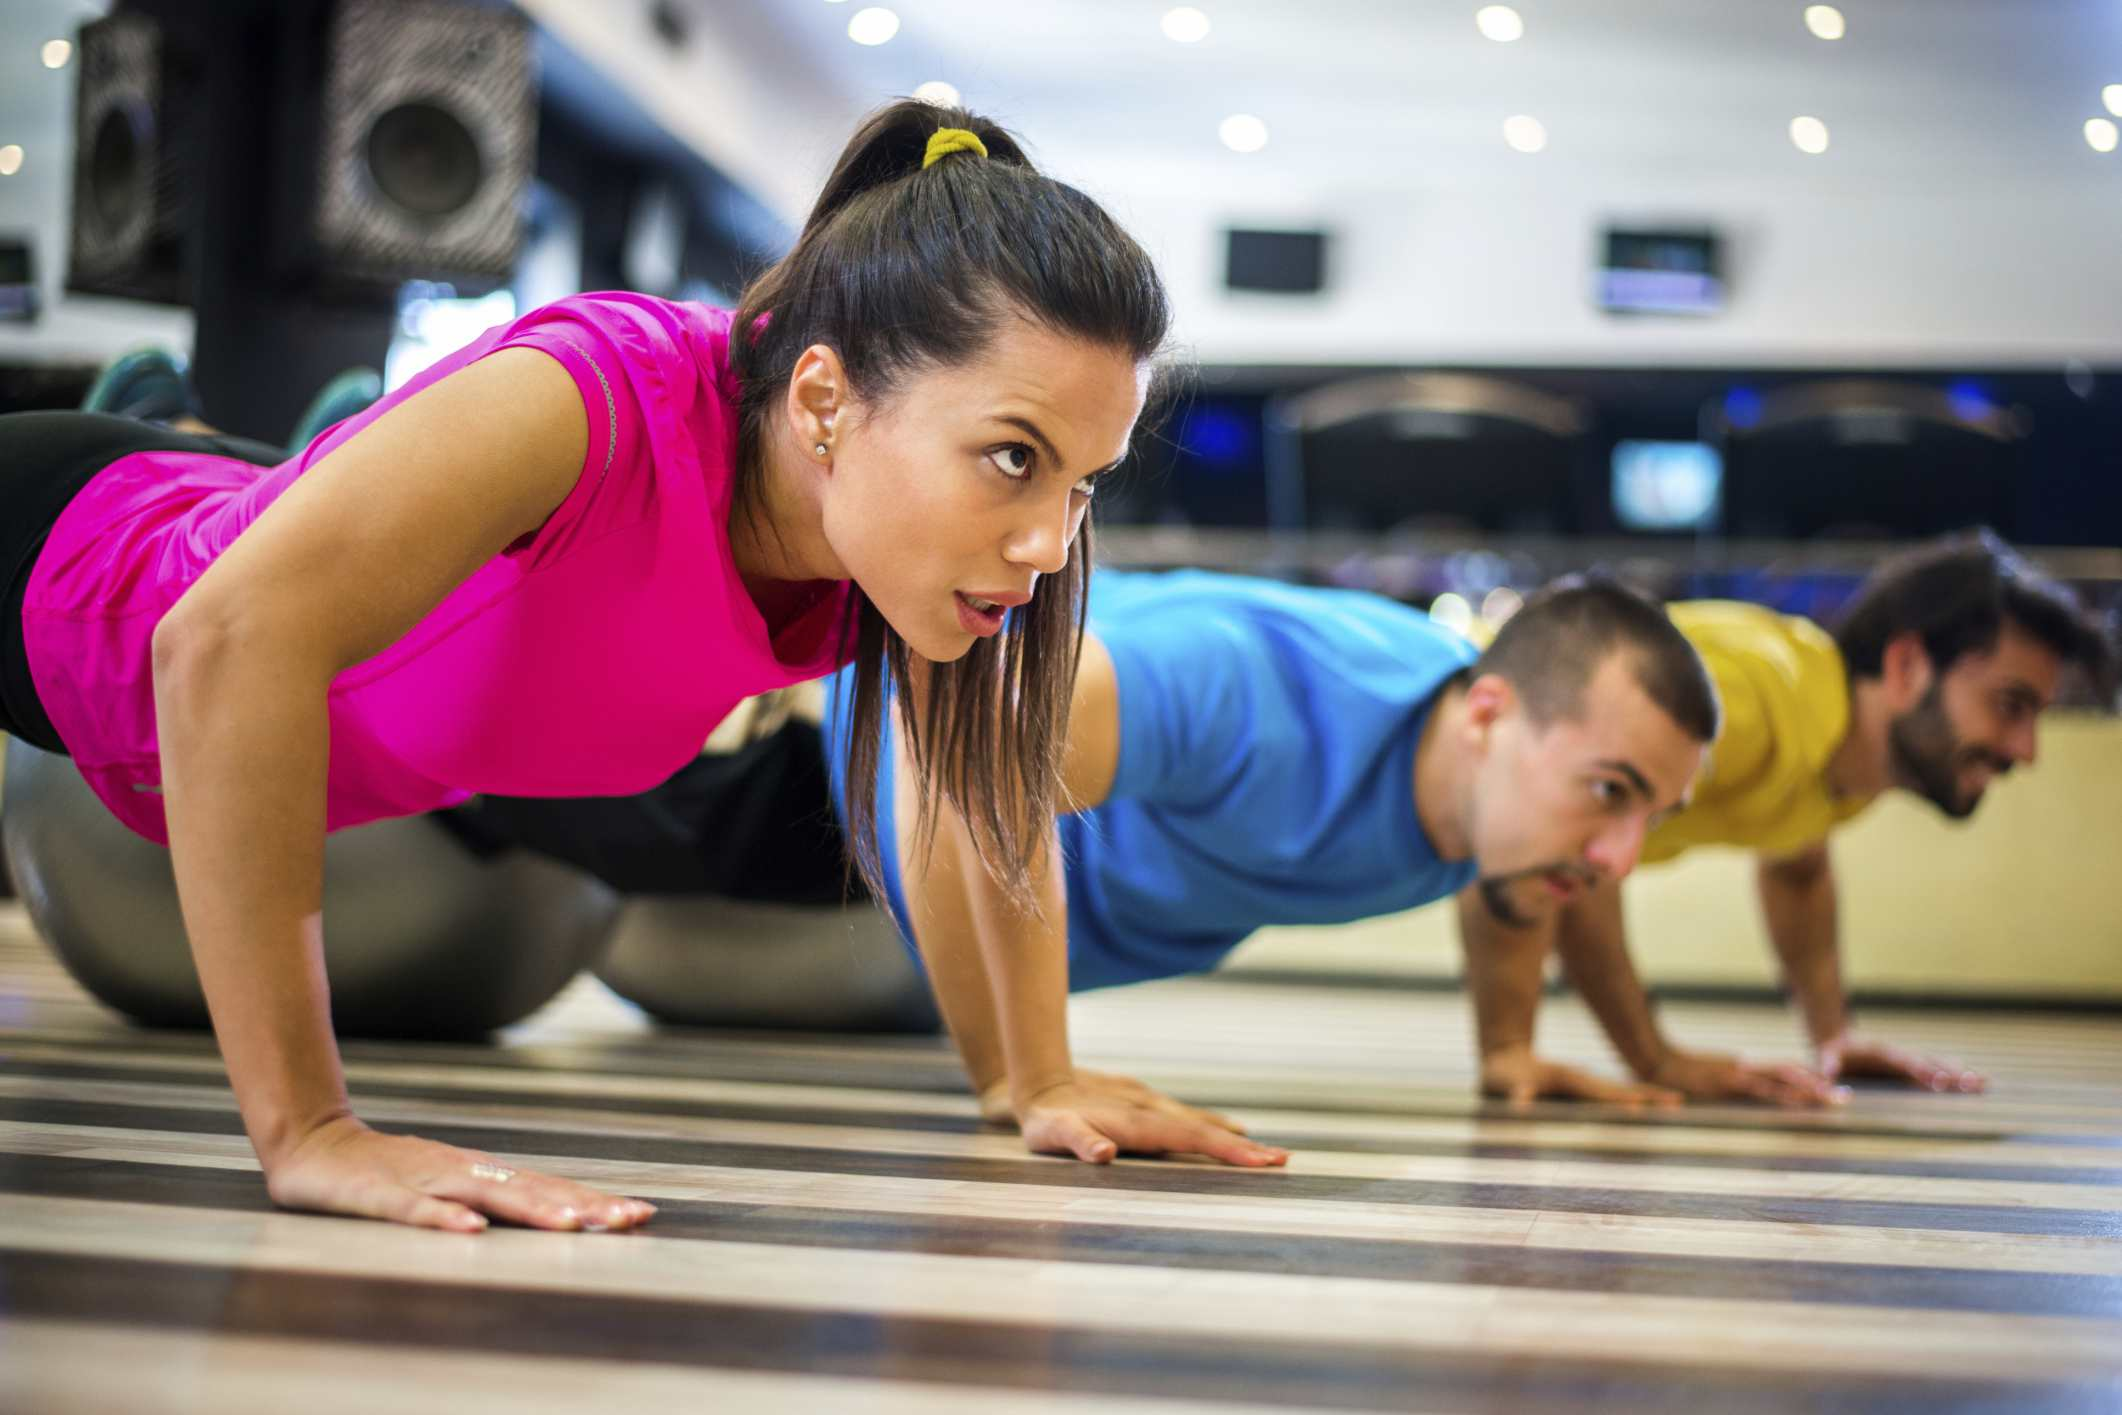 Meet singles at the gym